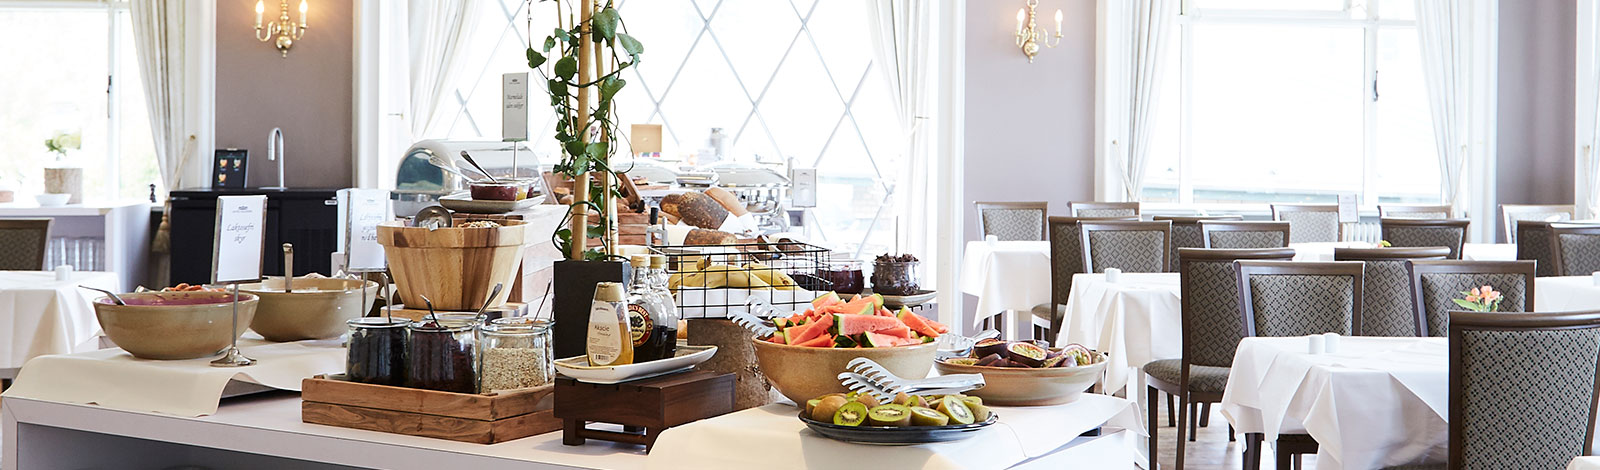 The delicious breakfast buffet is also included in hotel accommodation at Hotel Vejlefjord